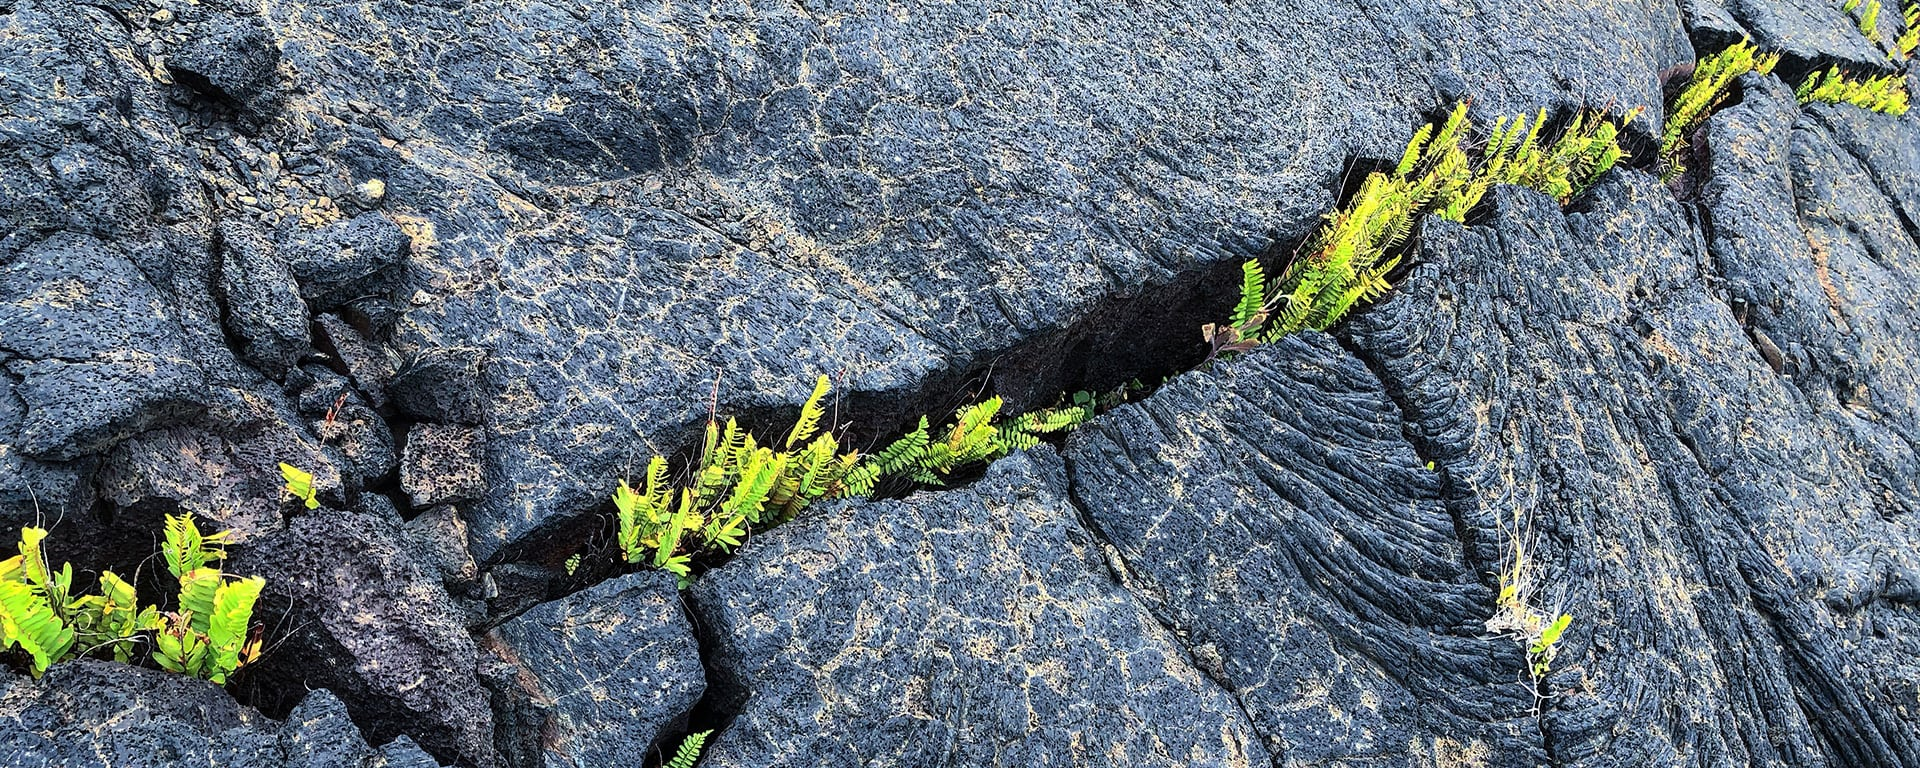 how process mining supports operational resilience - plants in lava